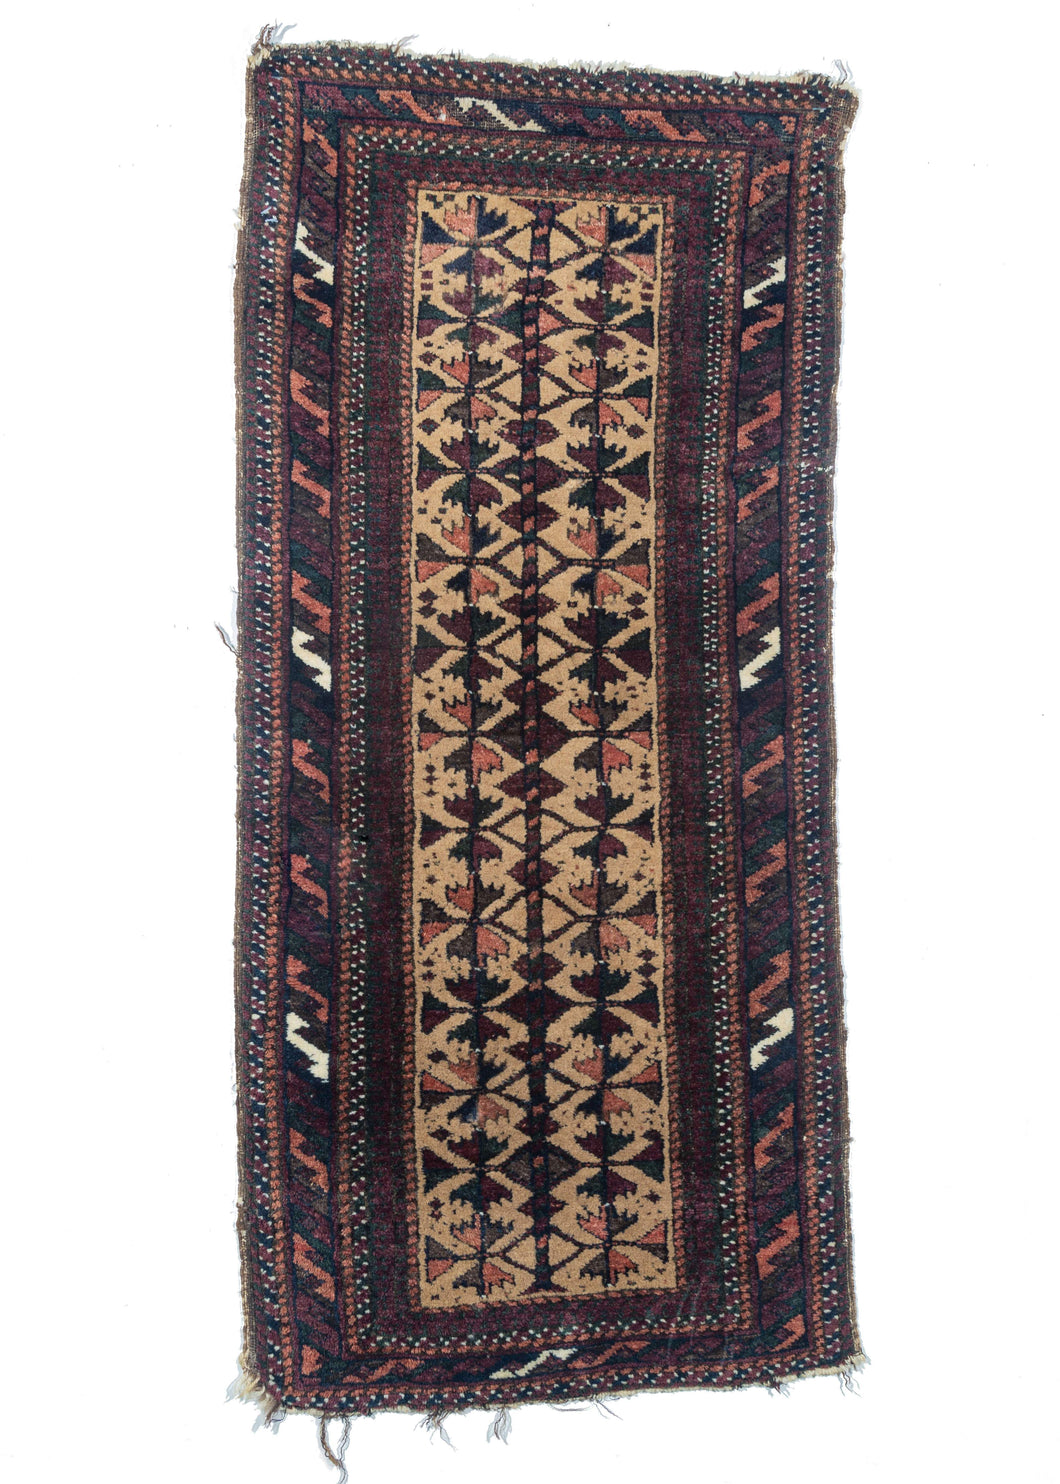 Antique Baluch Balisht Pillow Cover Handwoven rug